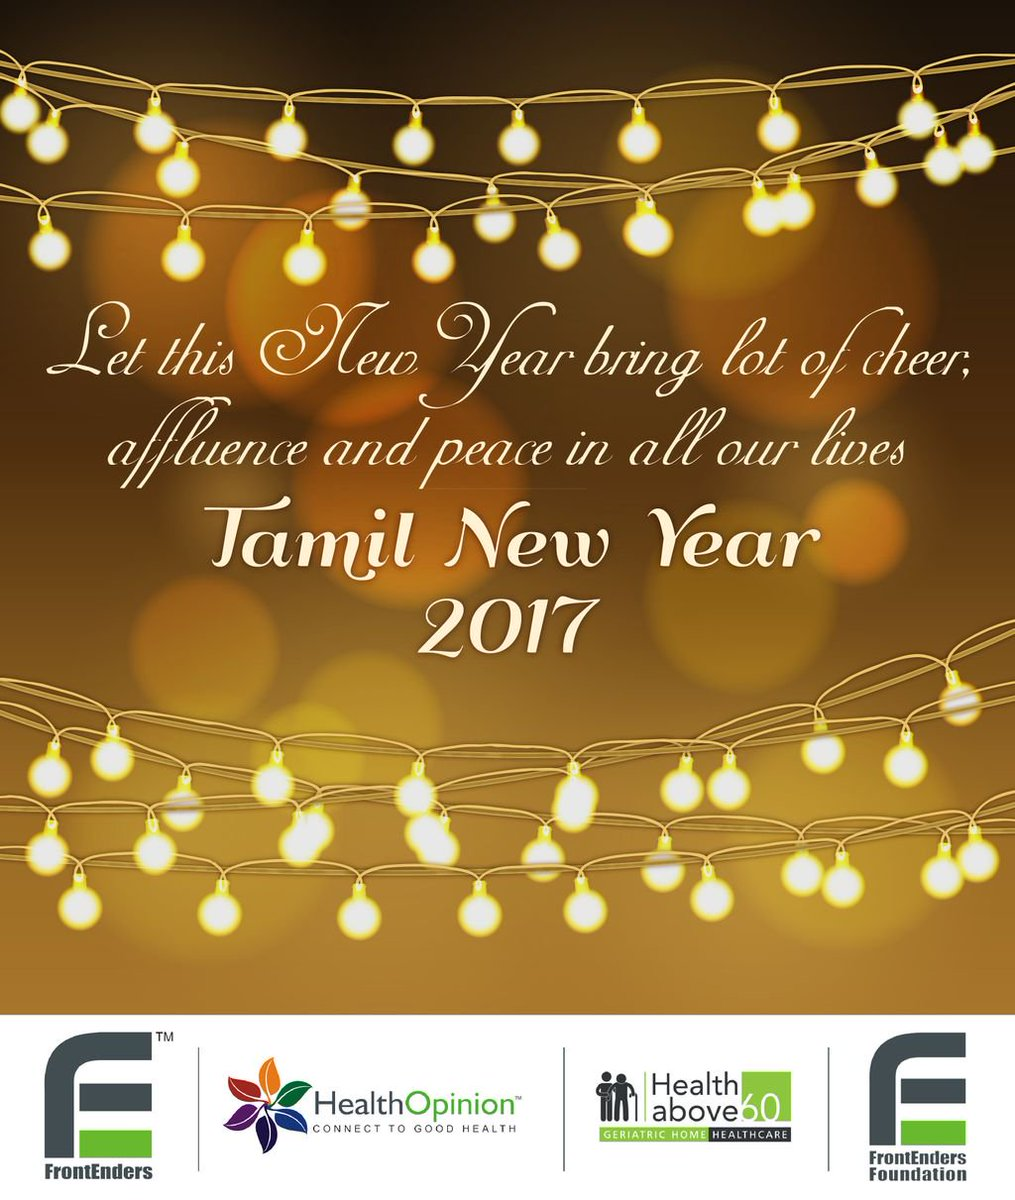 Healthabove60 On Twitter Let This Tamil New Year Brings Lot Of